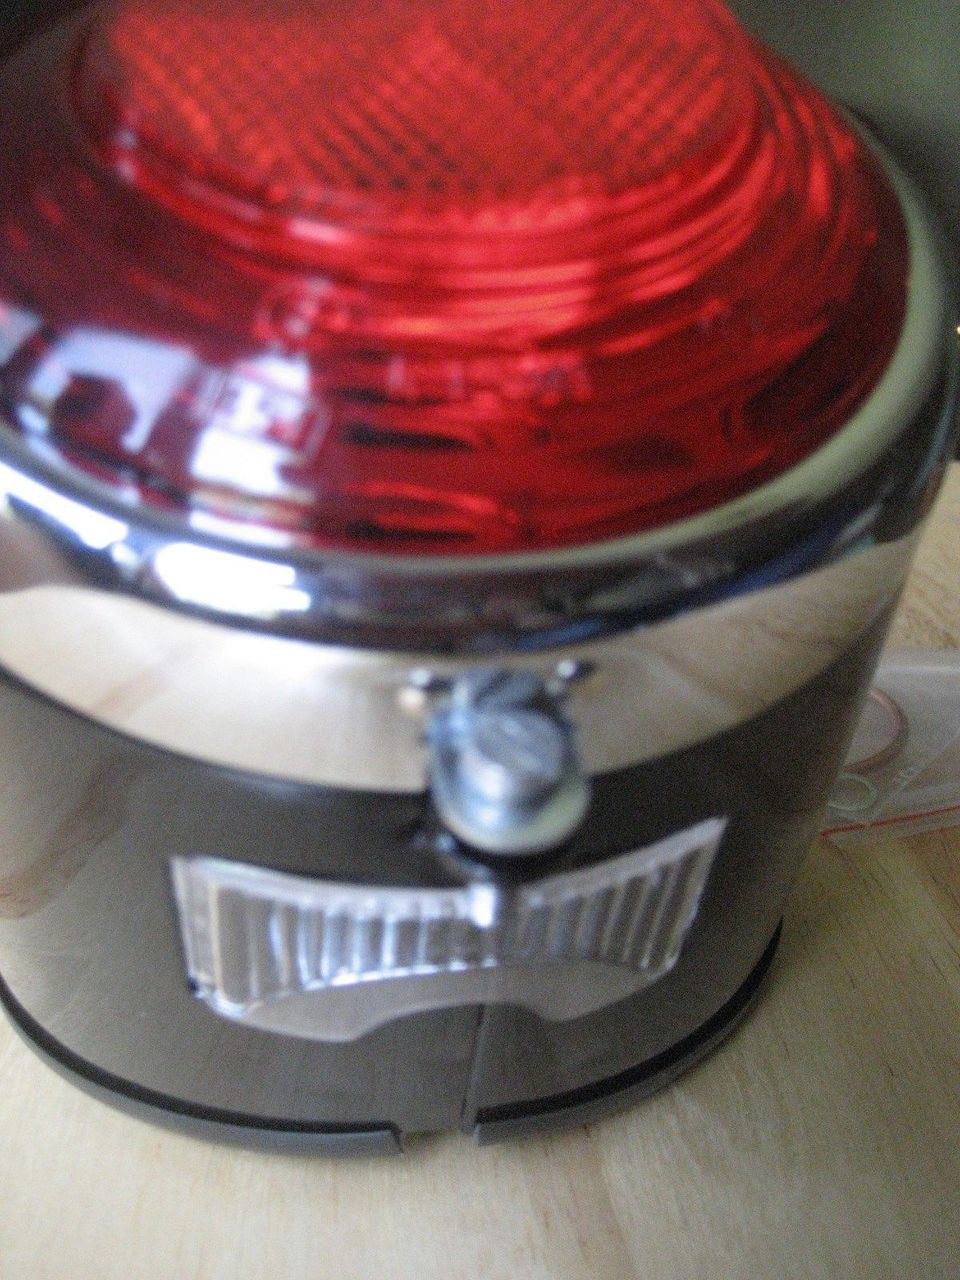 VINTAGE BMW COMPLETE COFFEE CAN TAIL LIGHT W/SOCKET BMW R69SR60 R50 AND R26 R27 - 63 24 8 054 118